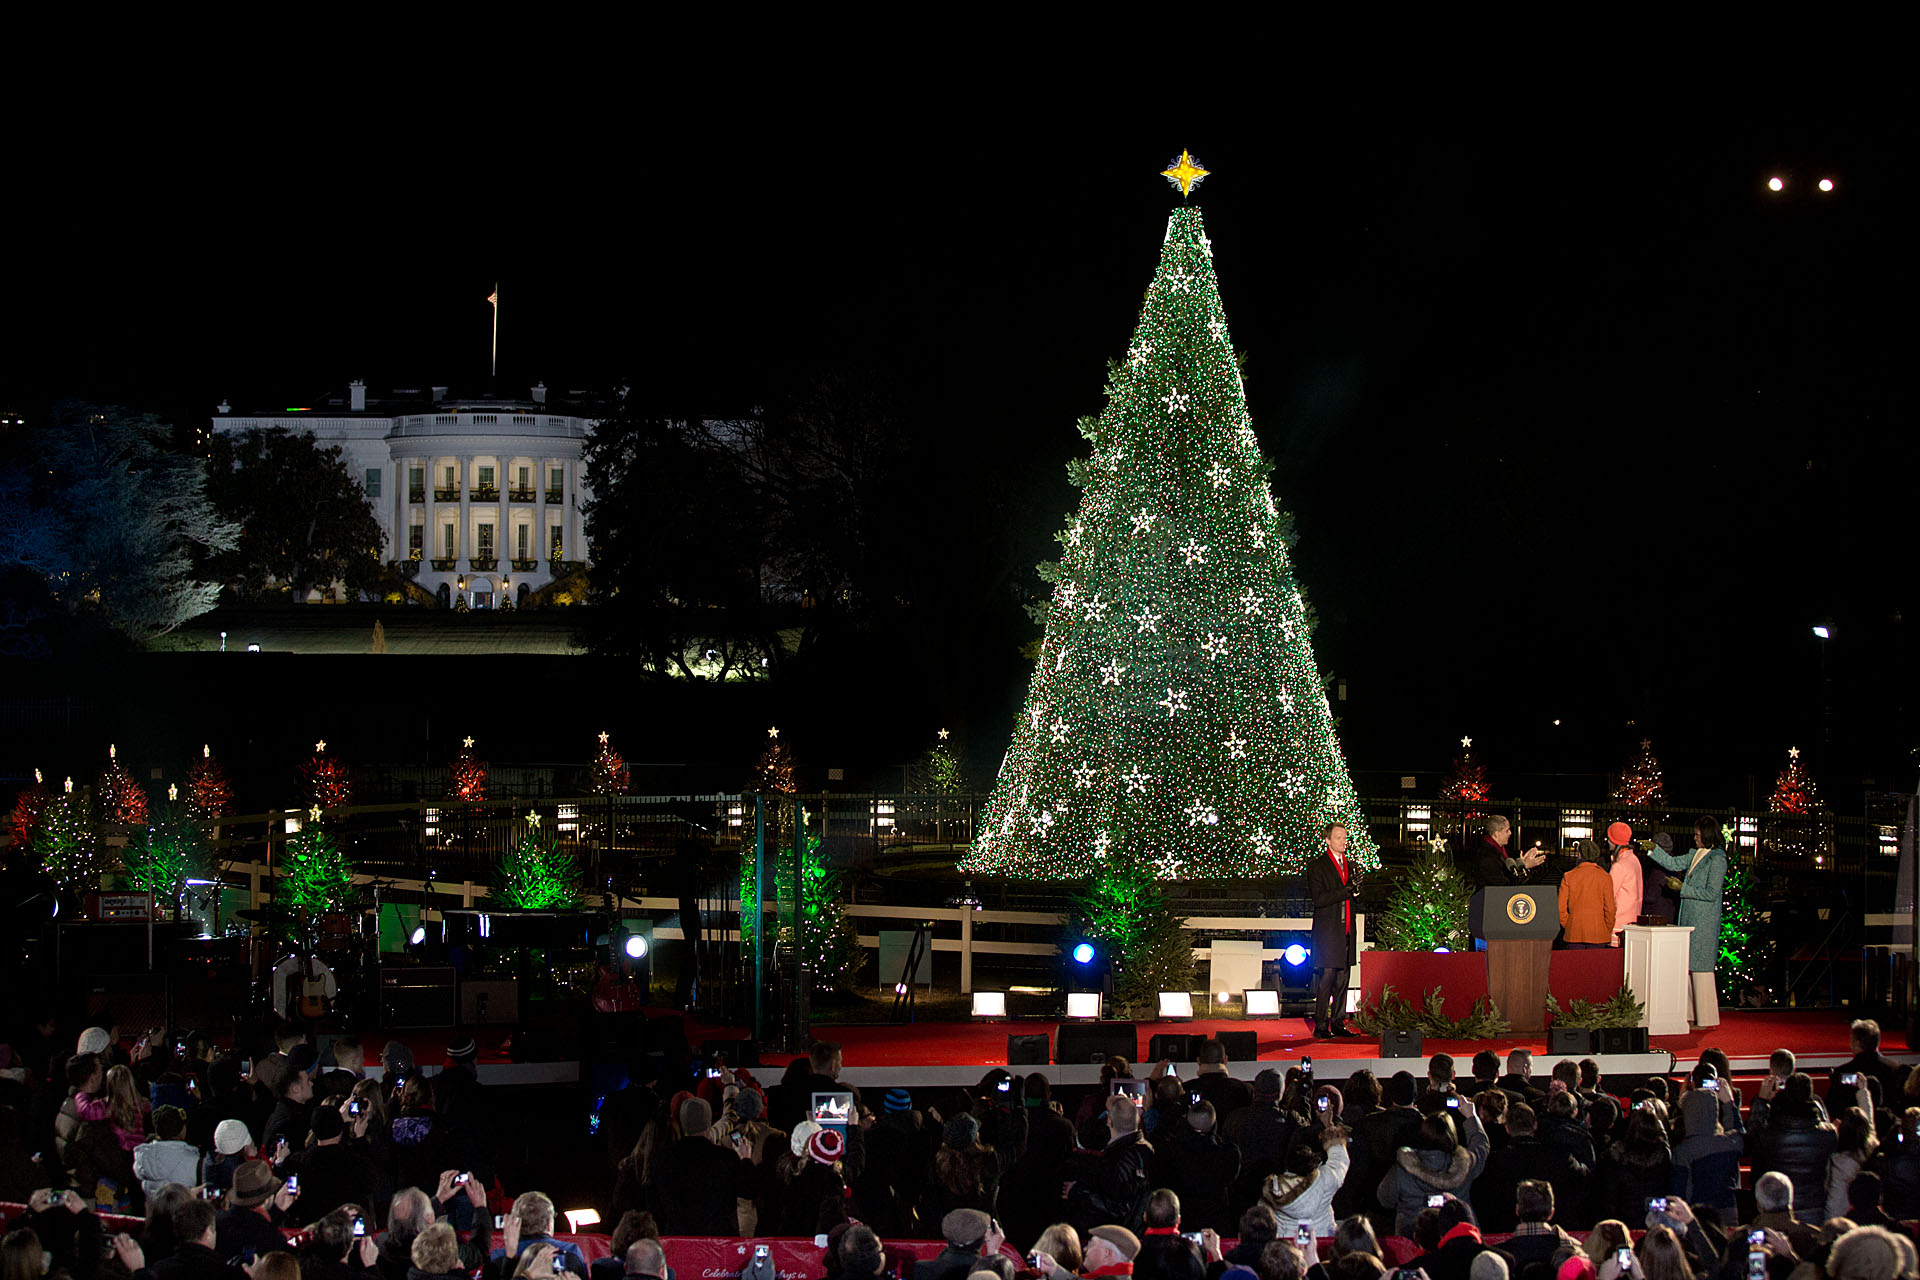 The lighting of the National Christmas Tree (December 6, 2012)